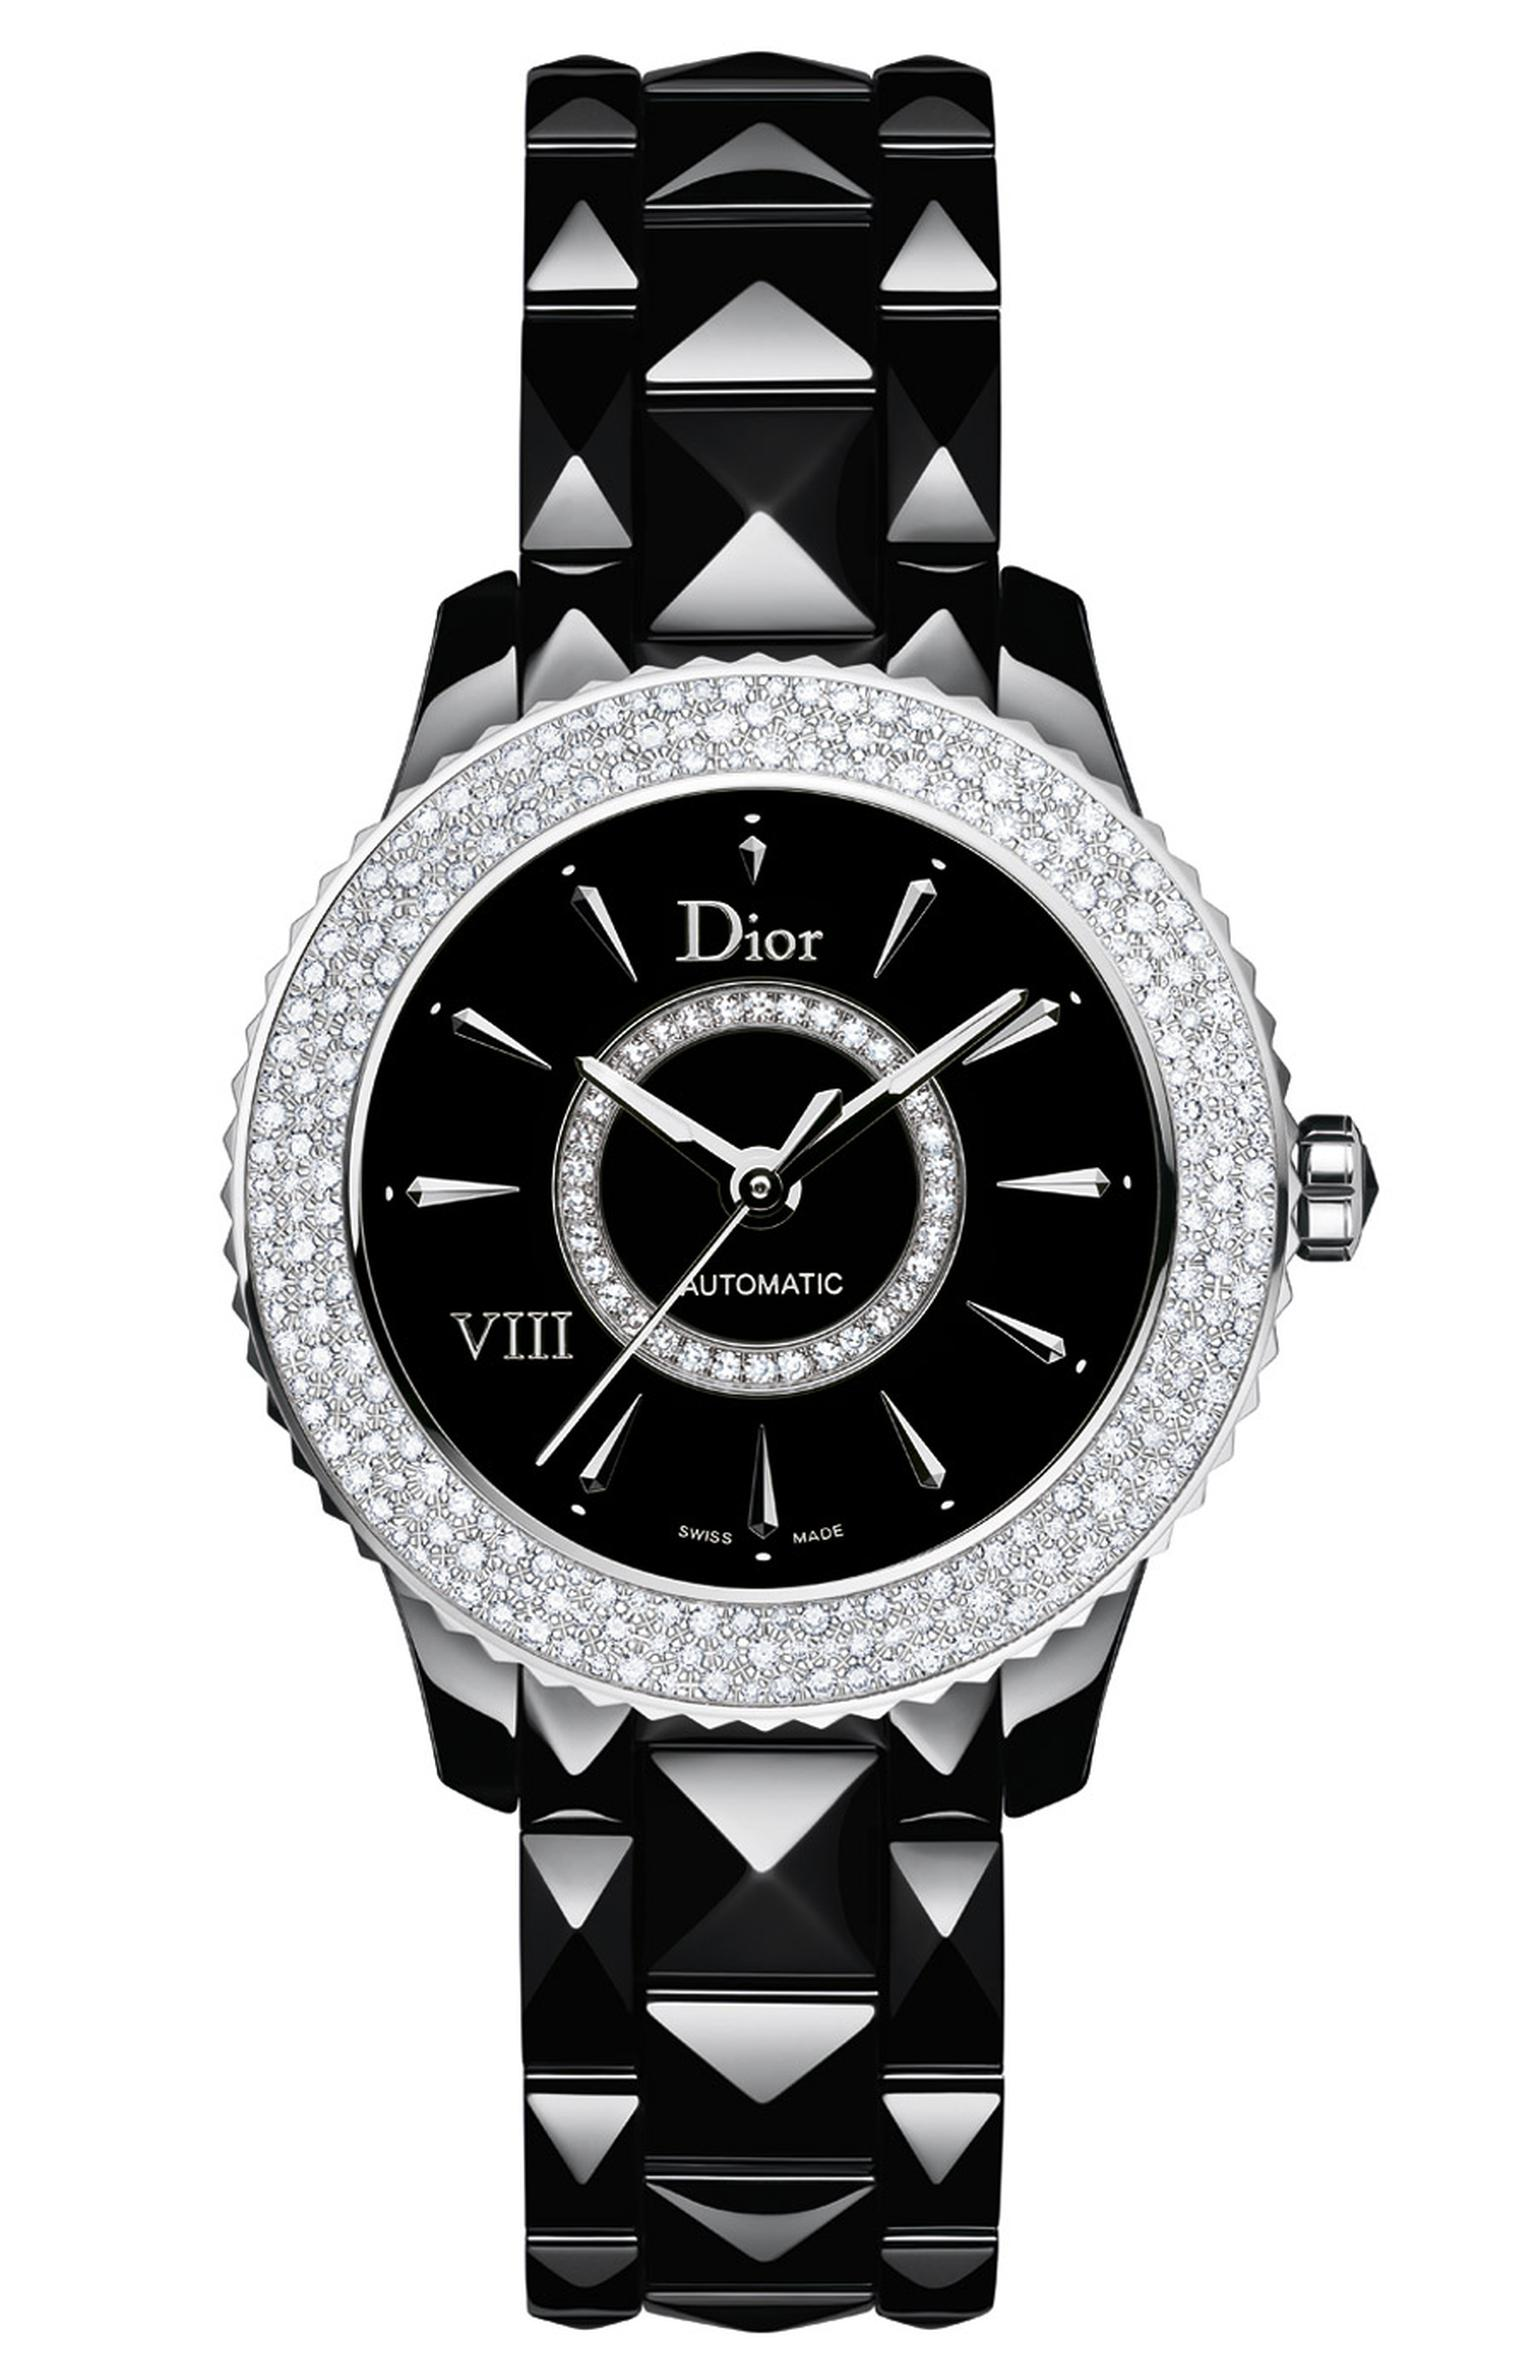 DIOR-VIII-BLACK-AUTO-DIAMOND-SNOW-SET-BEZEL-38mm.jpg